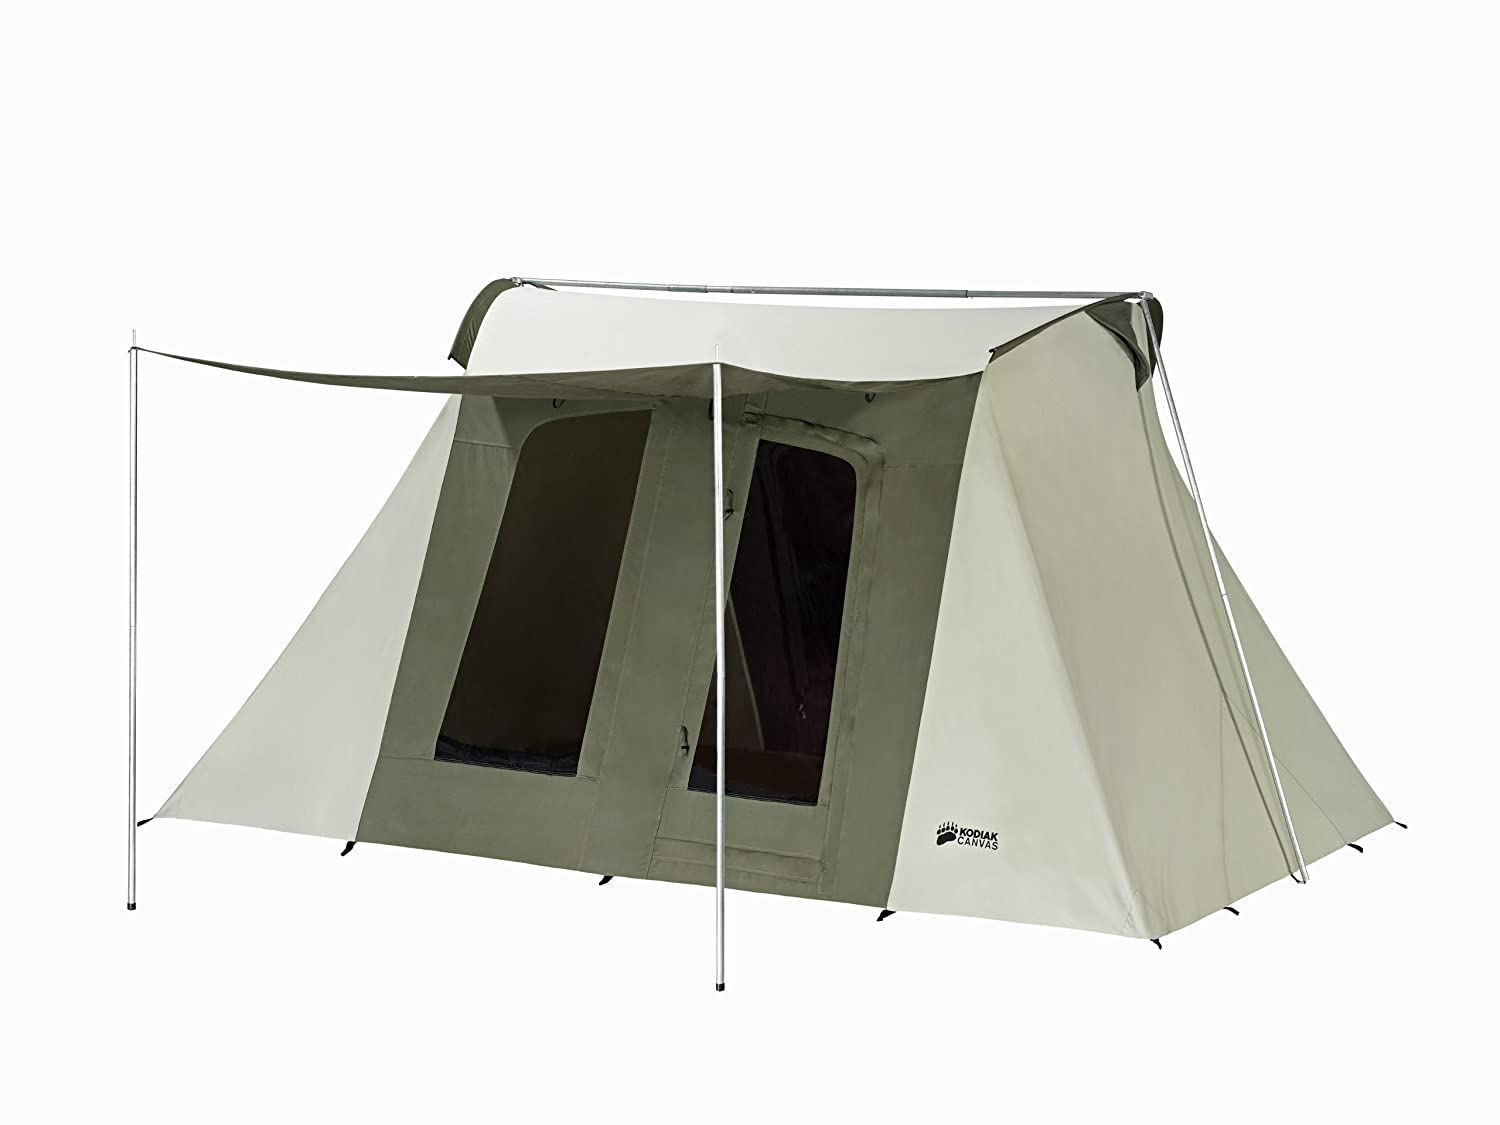 Kodiak Canvas Flex-Bow Deluxe 8-Person Tent Black Friday 2020 Deals